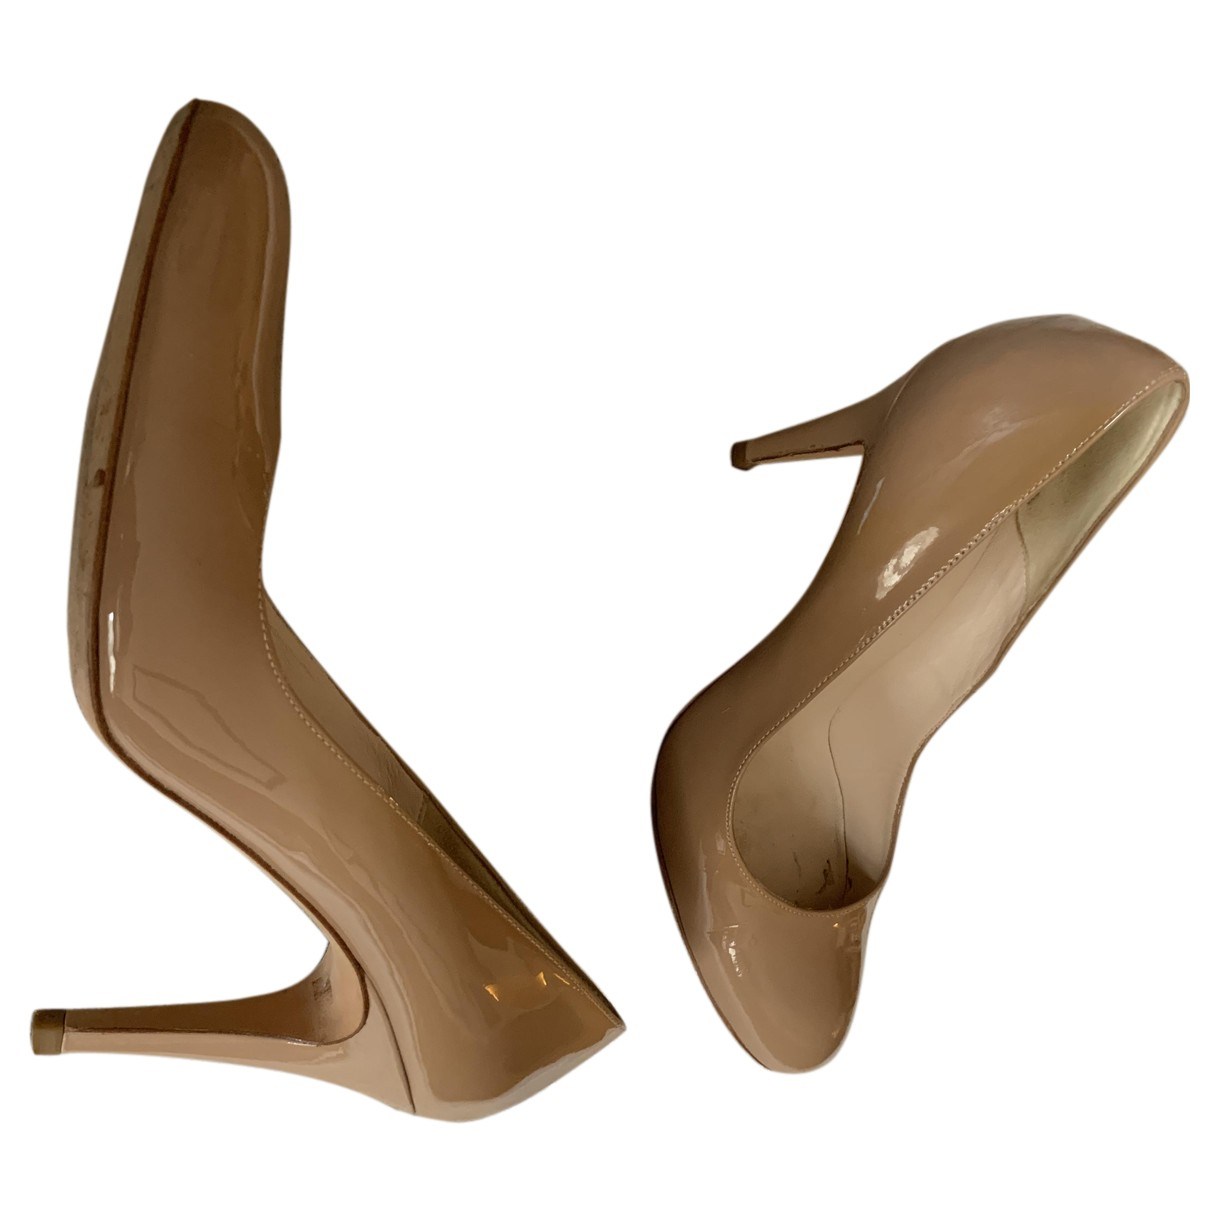 Minelli N Beige Patent leather Heels for Women 40 EU